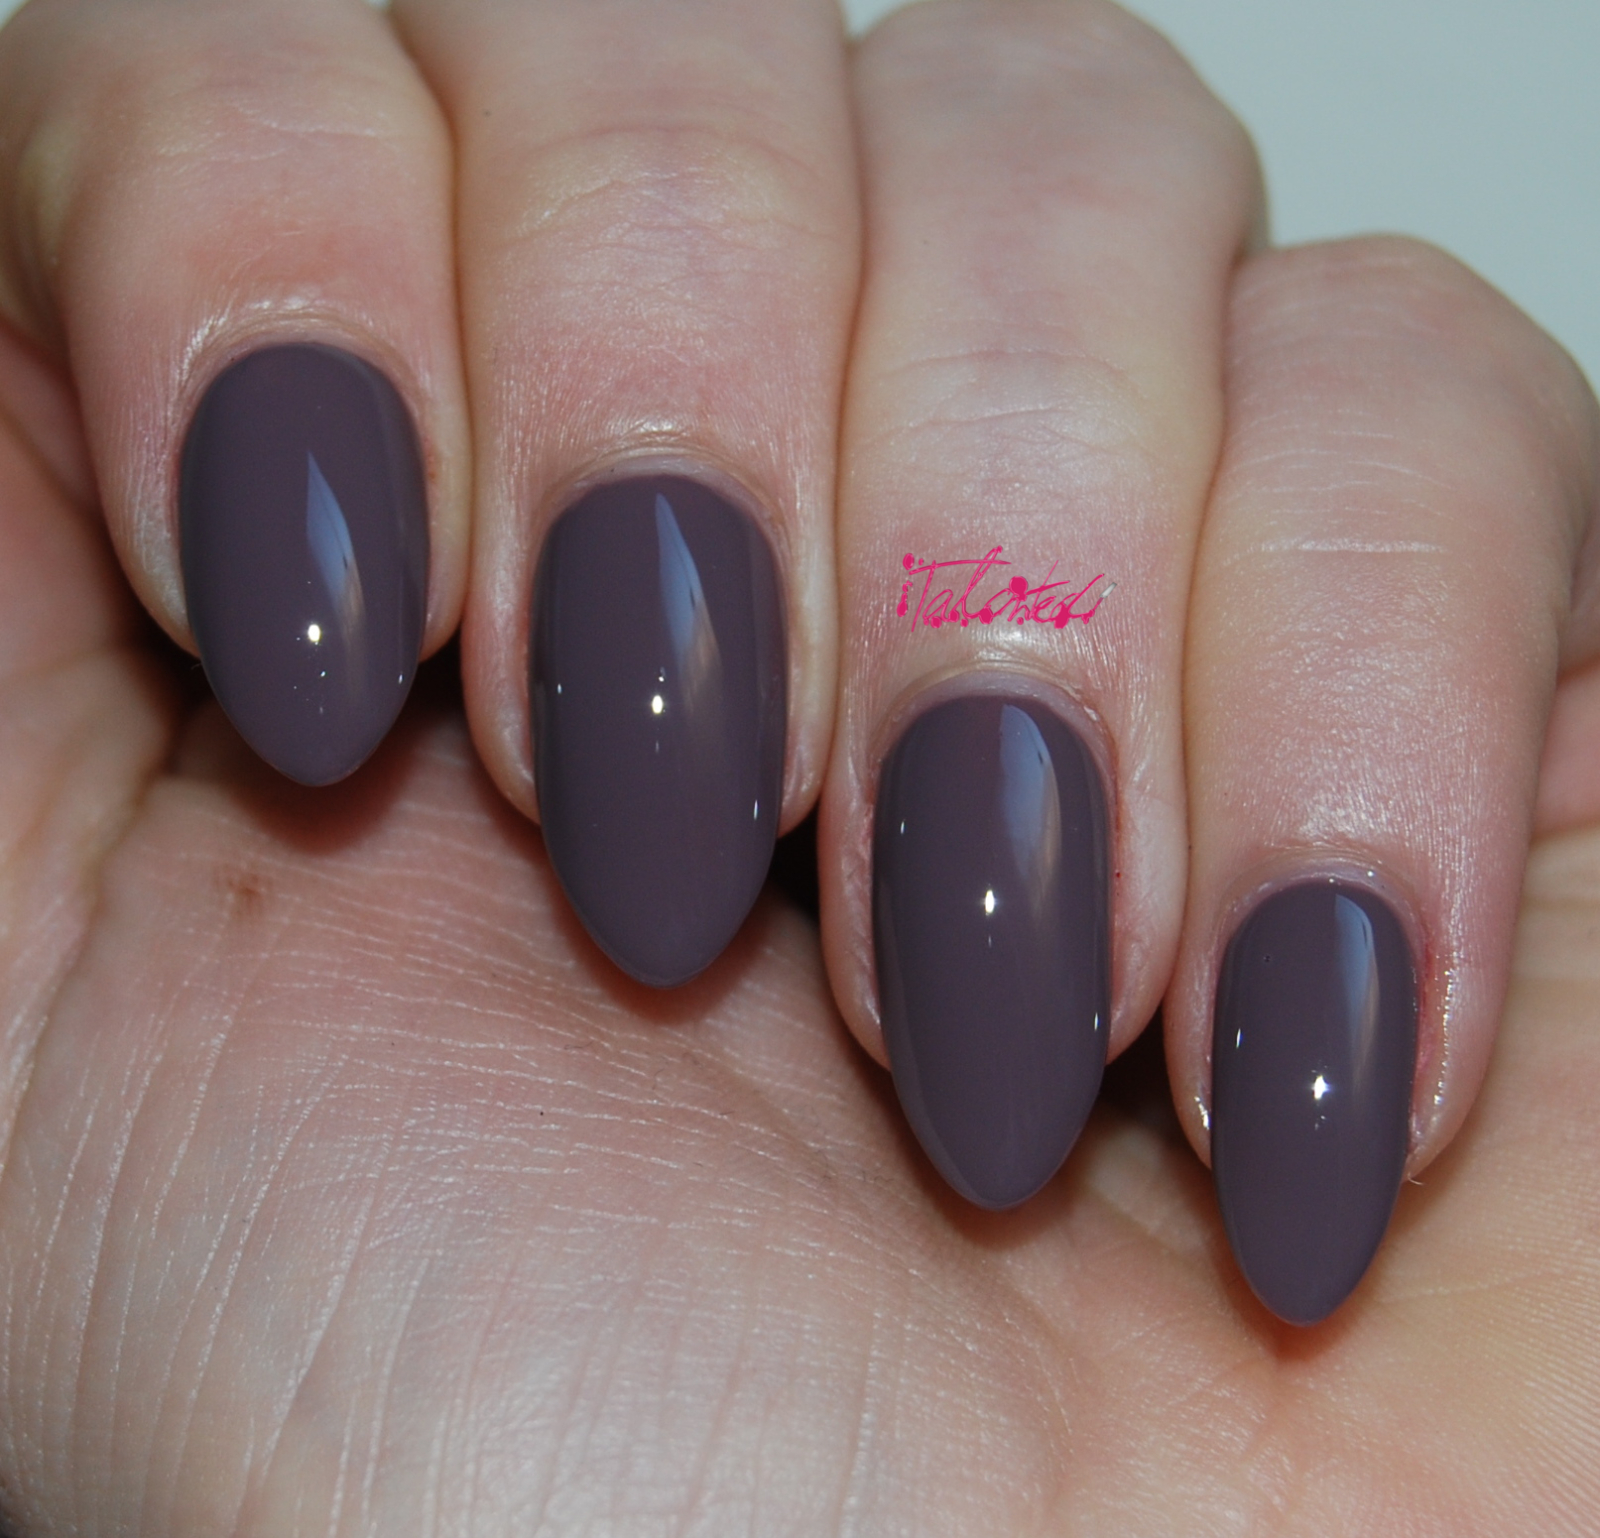 Essie Merino Cool Review - talonted lex